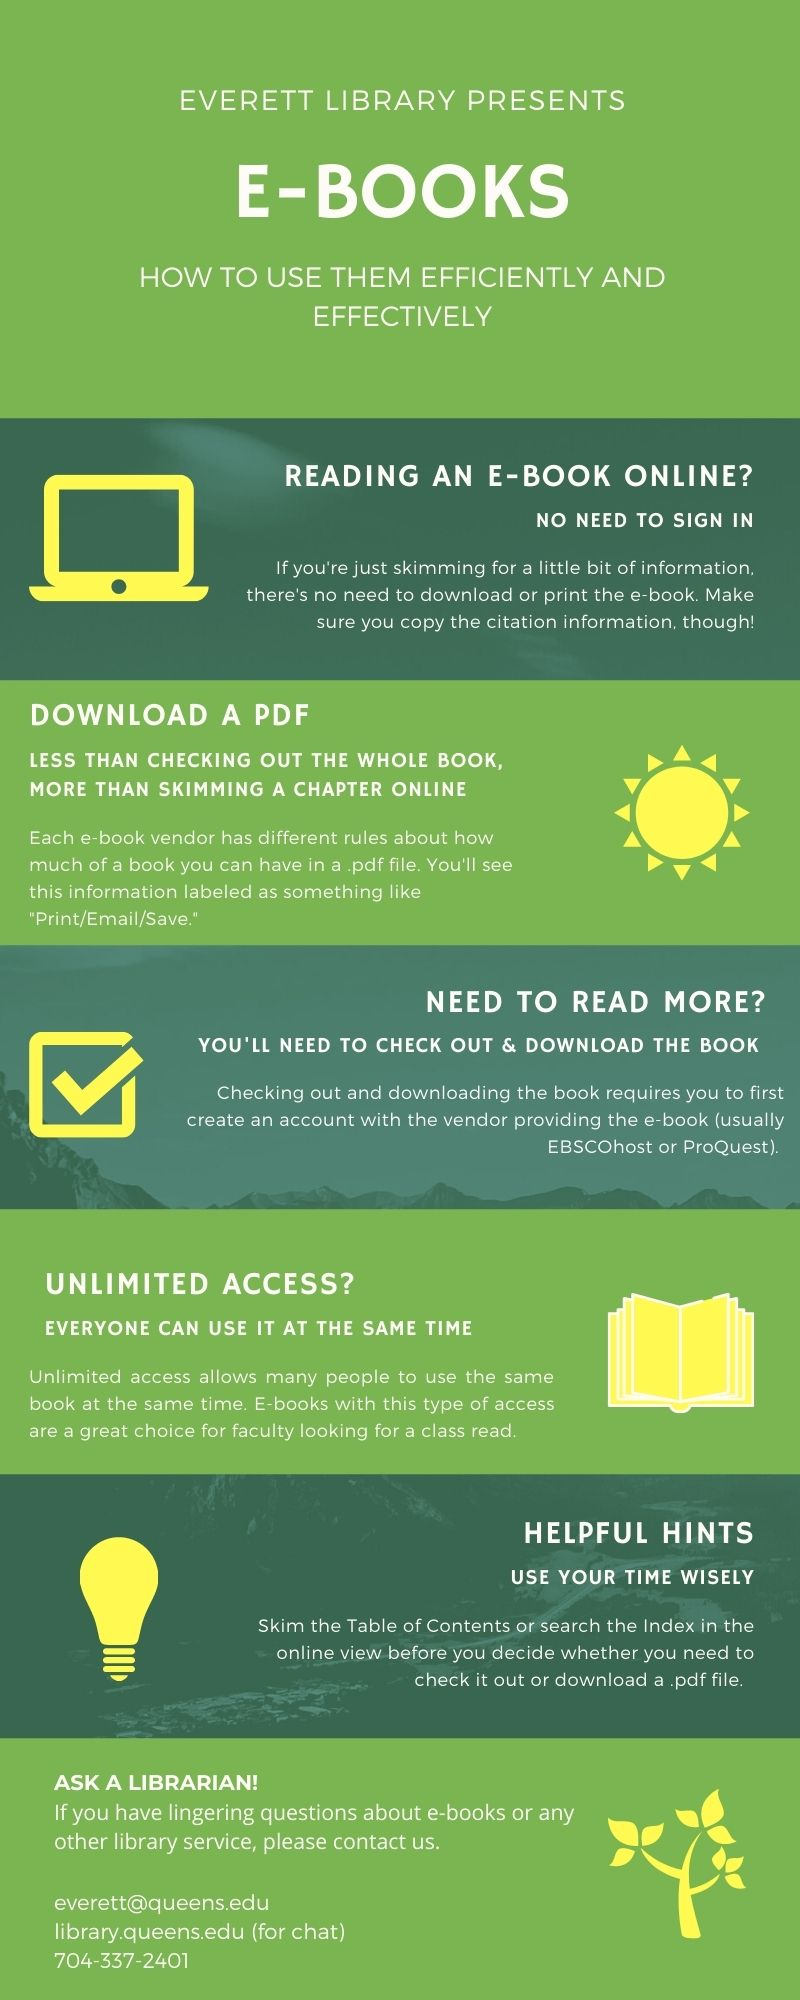 How to use e-books efficiently and effectively